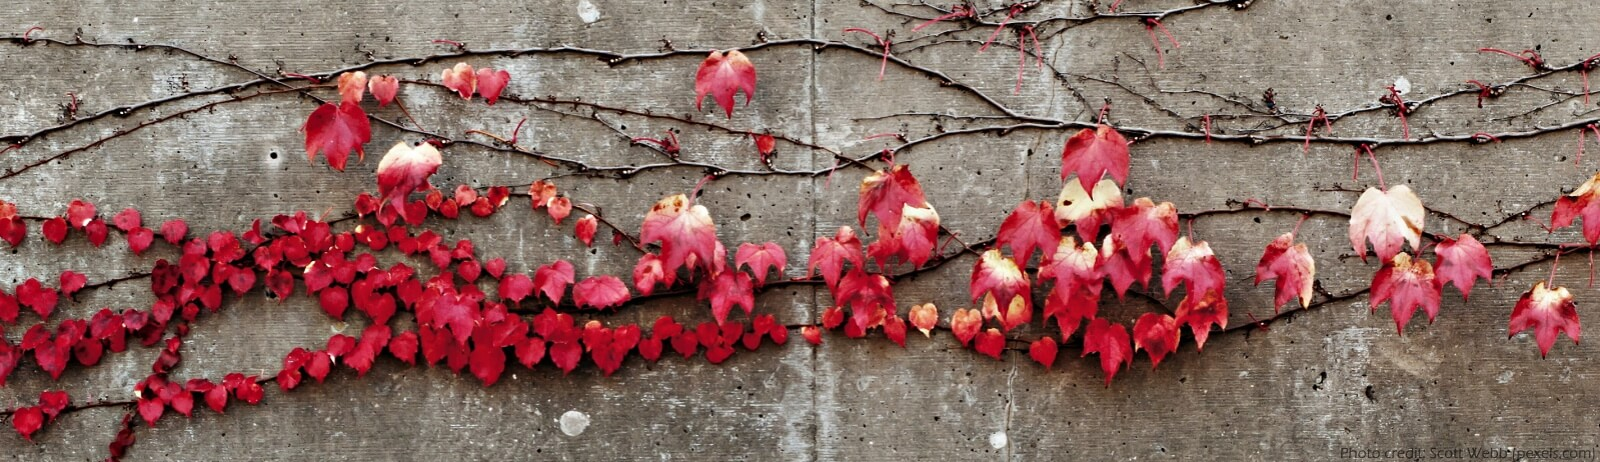 Autumn red vines on a cement wall